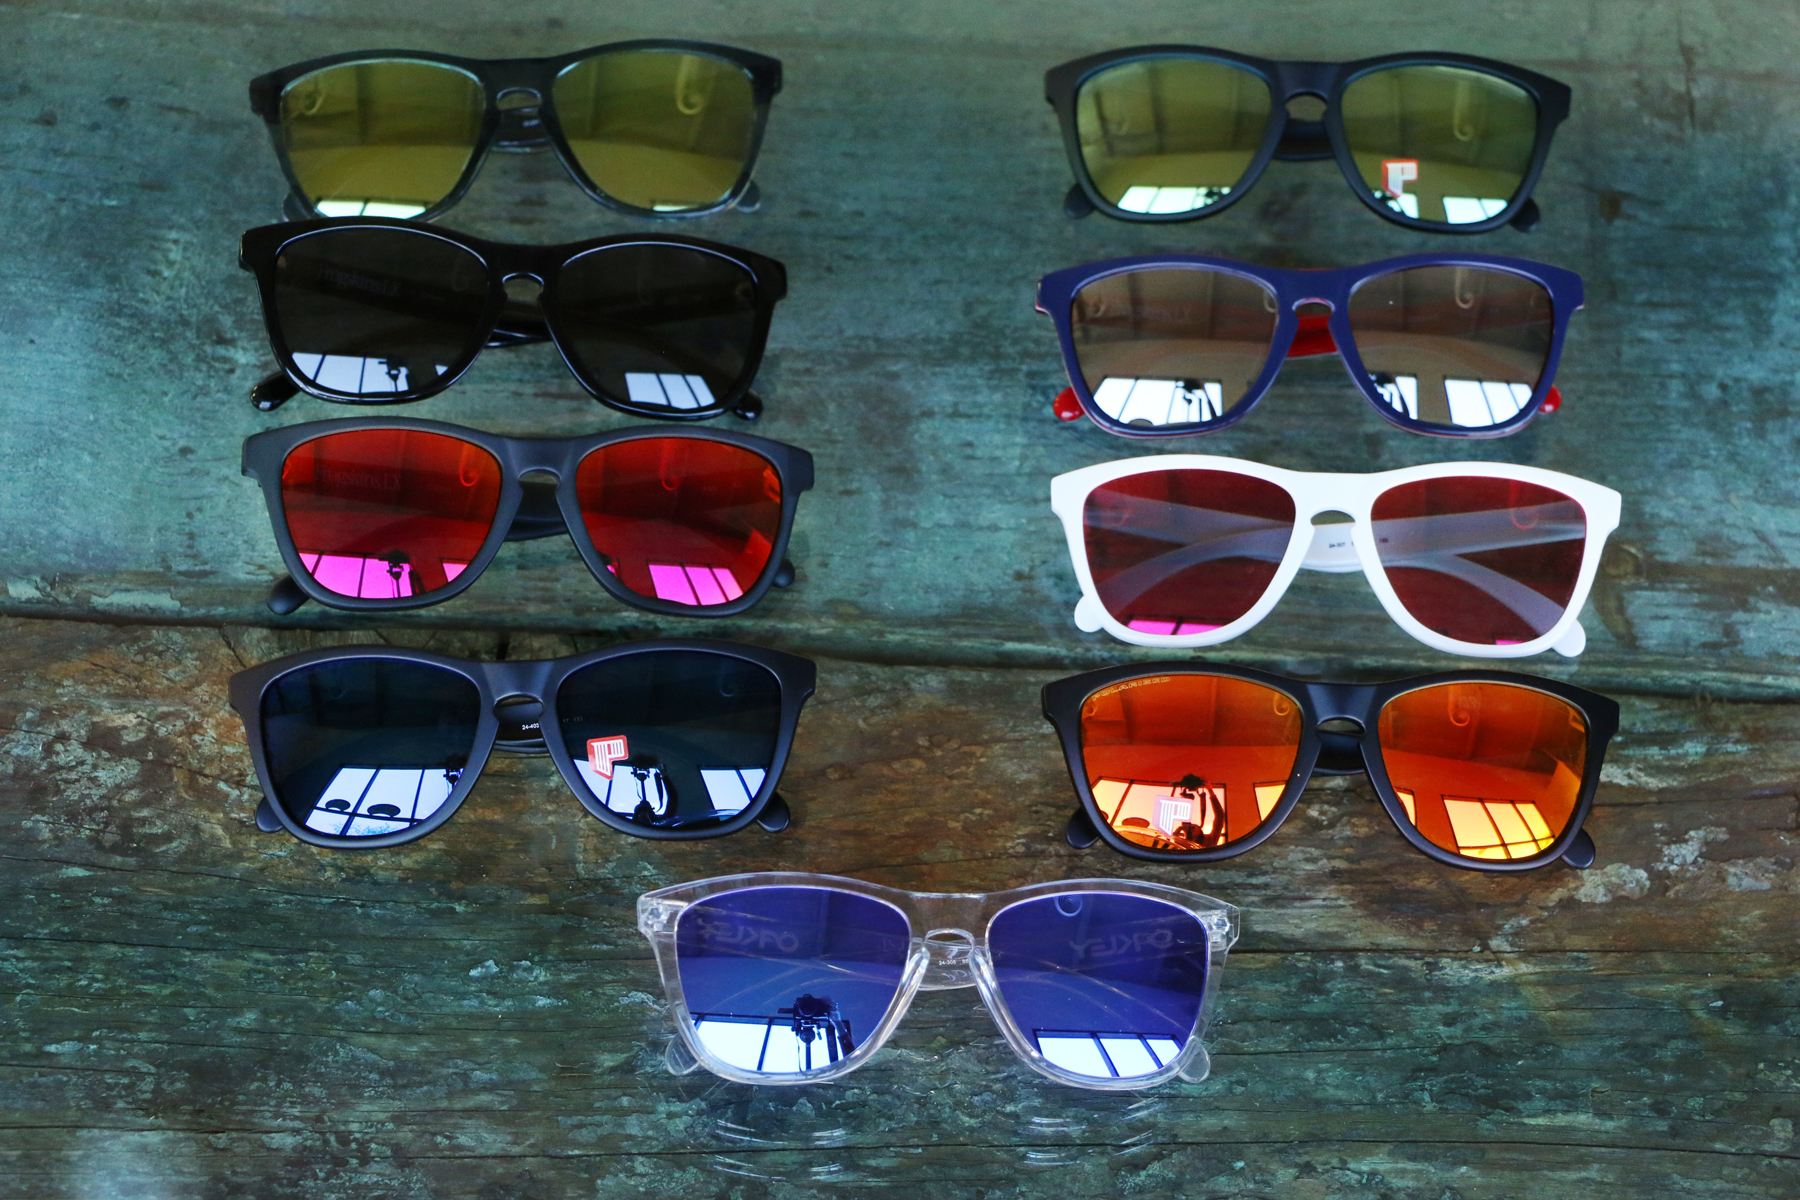 ac6fe5e40f41 Oakley Frogskins. Get wit  it and get ribbit.